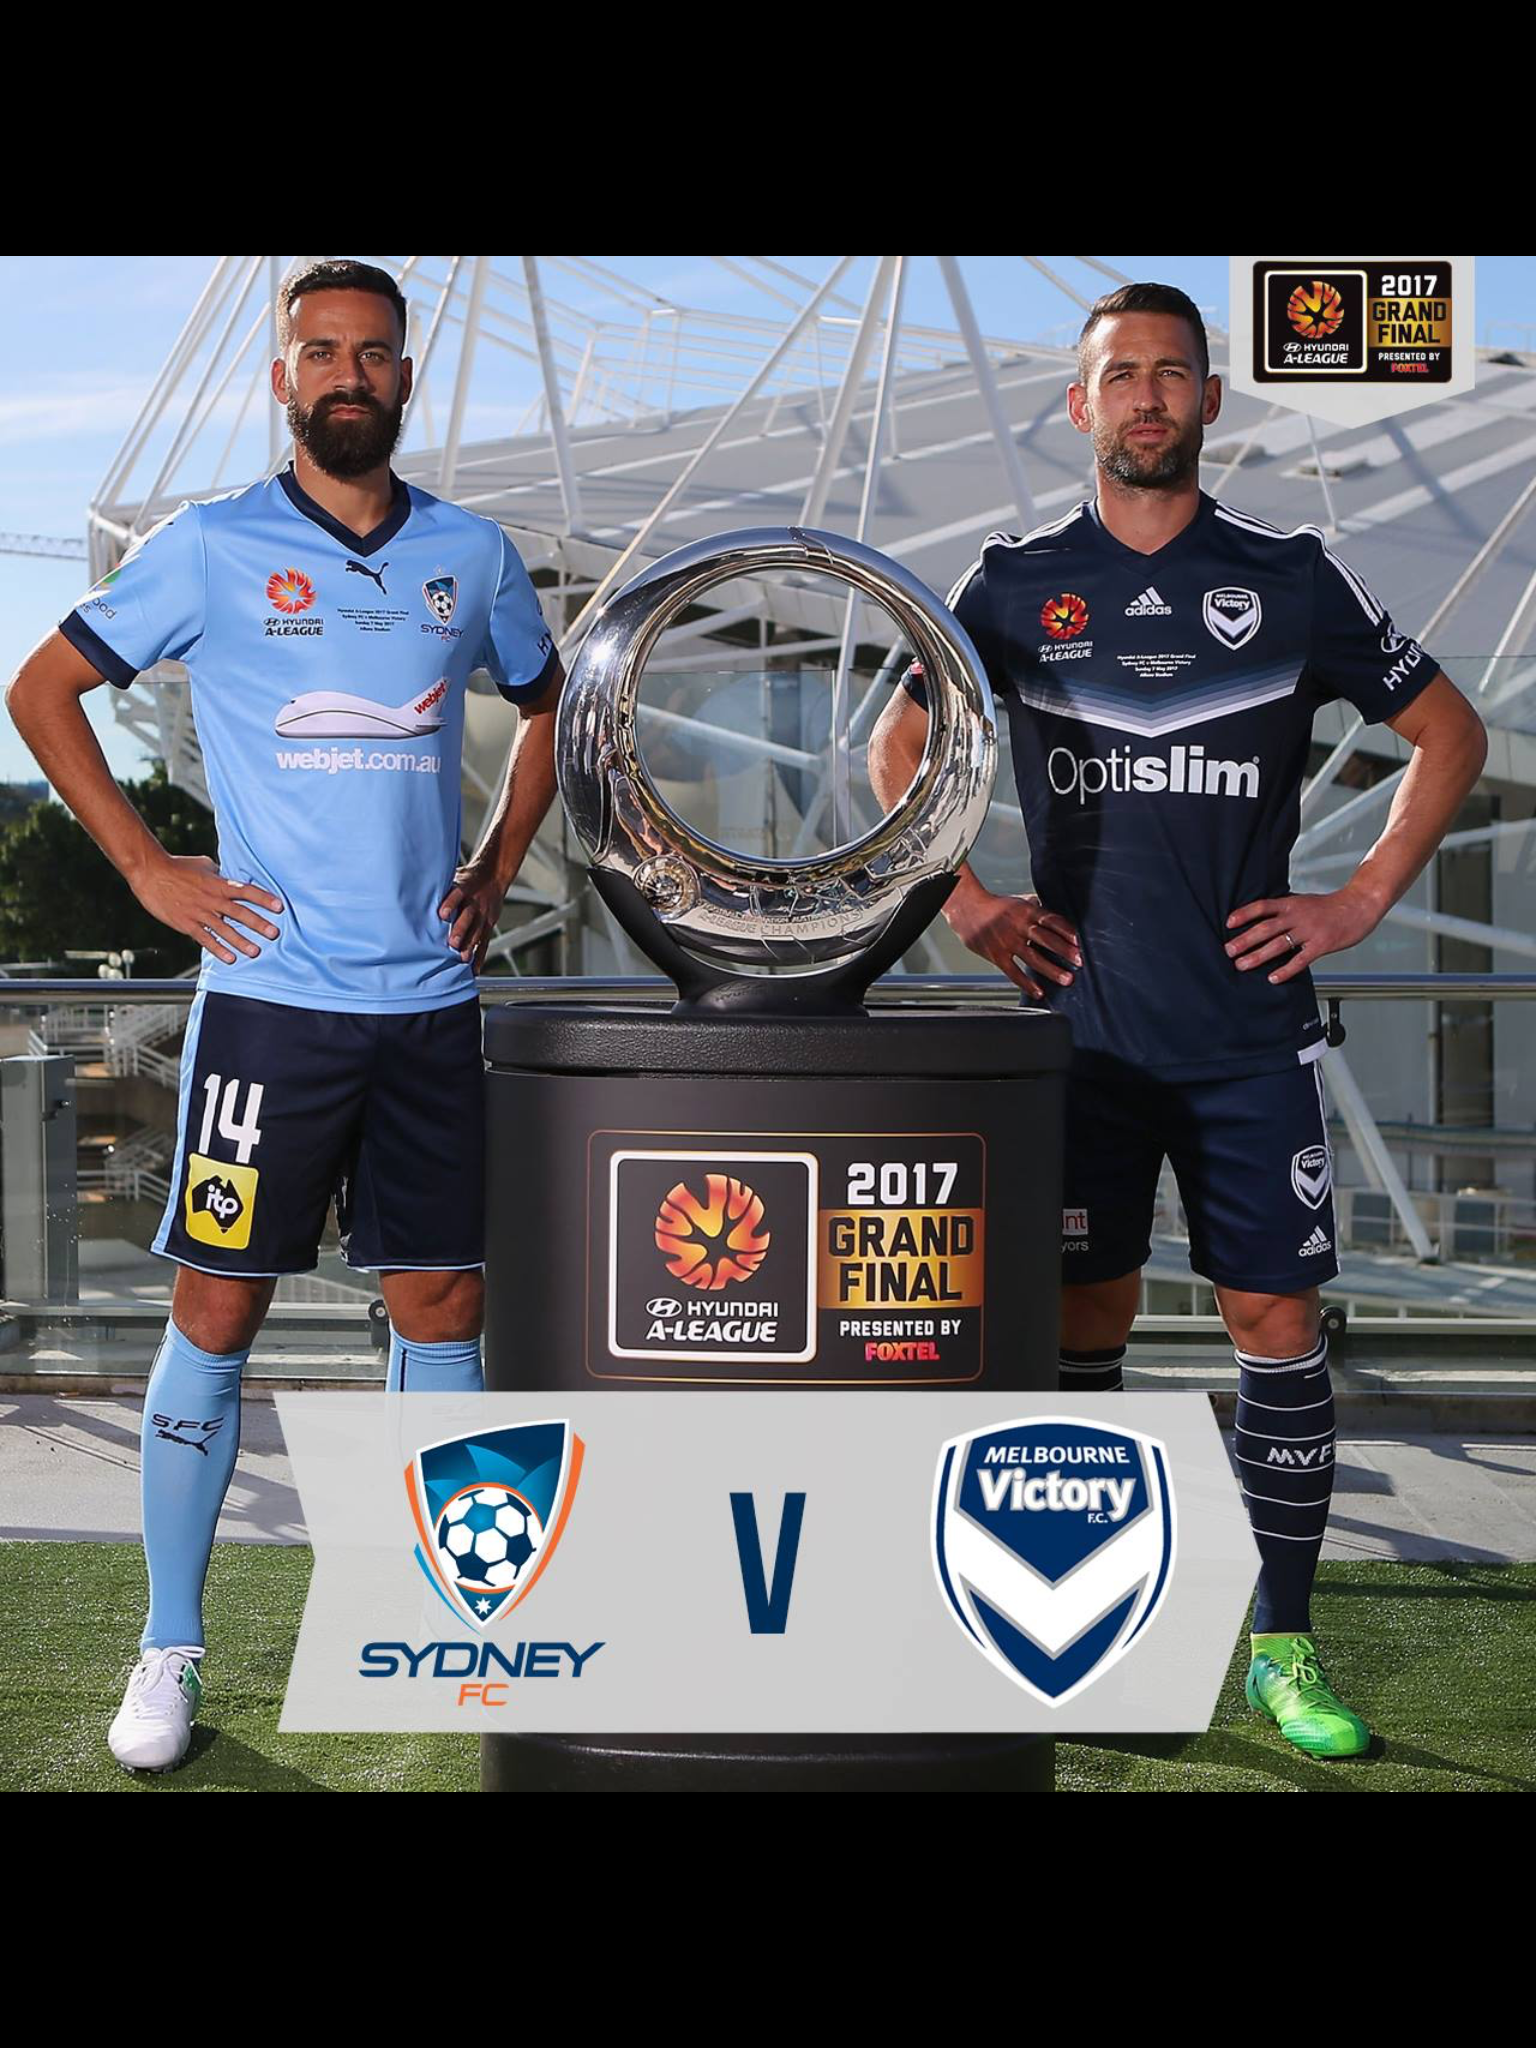 Pin on Melbourne Victory/Australian Football the round ball